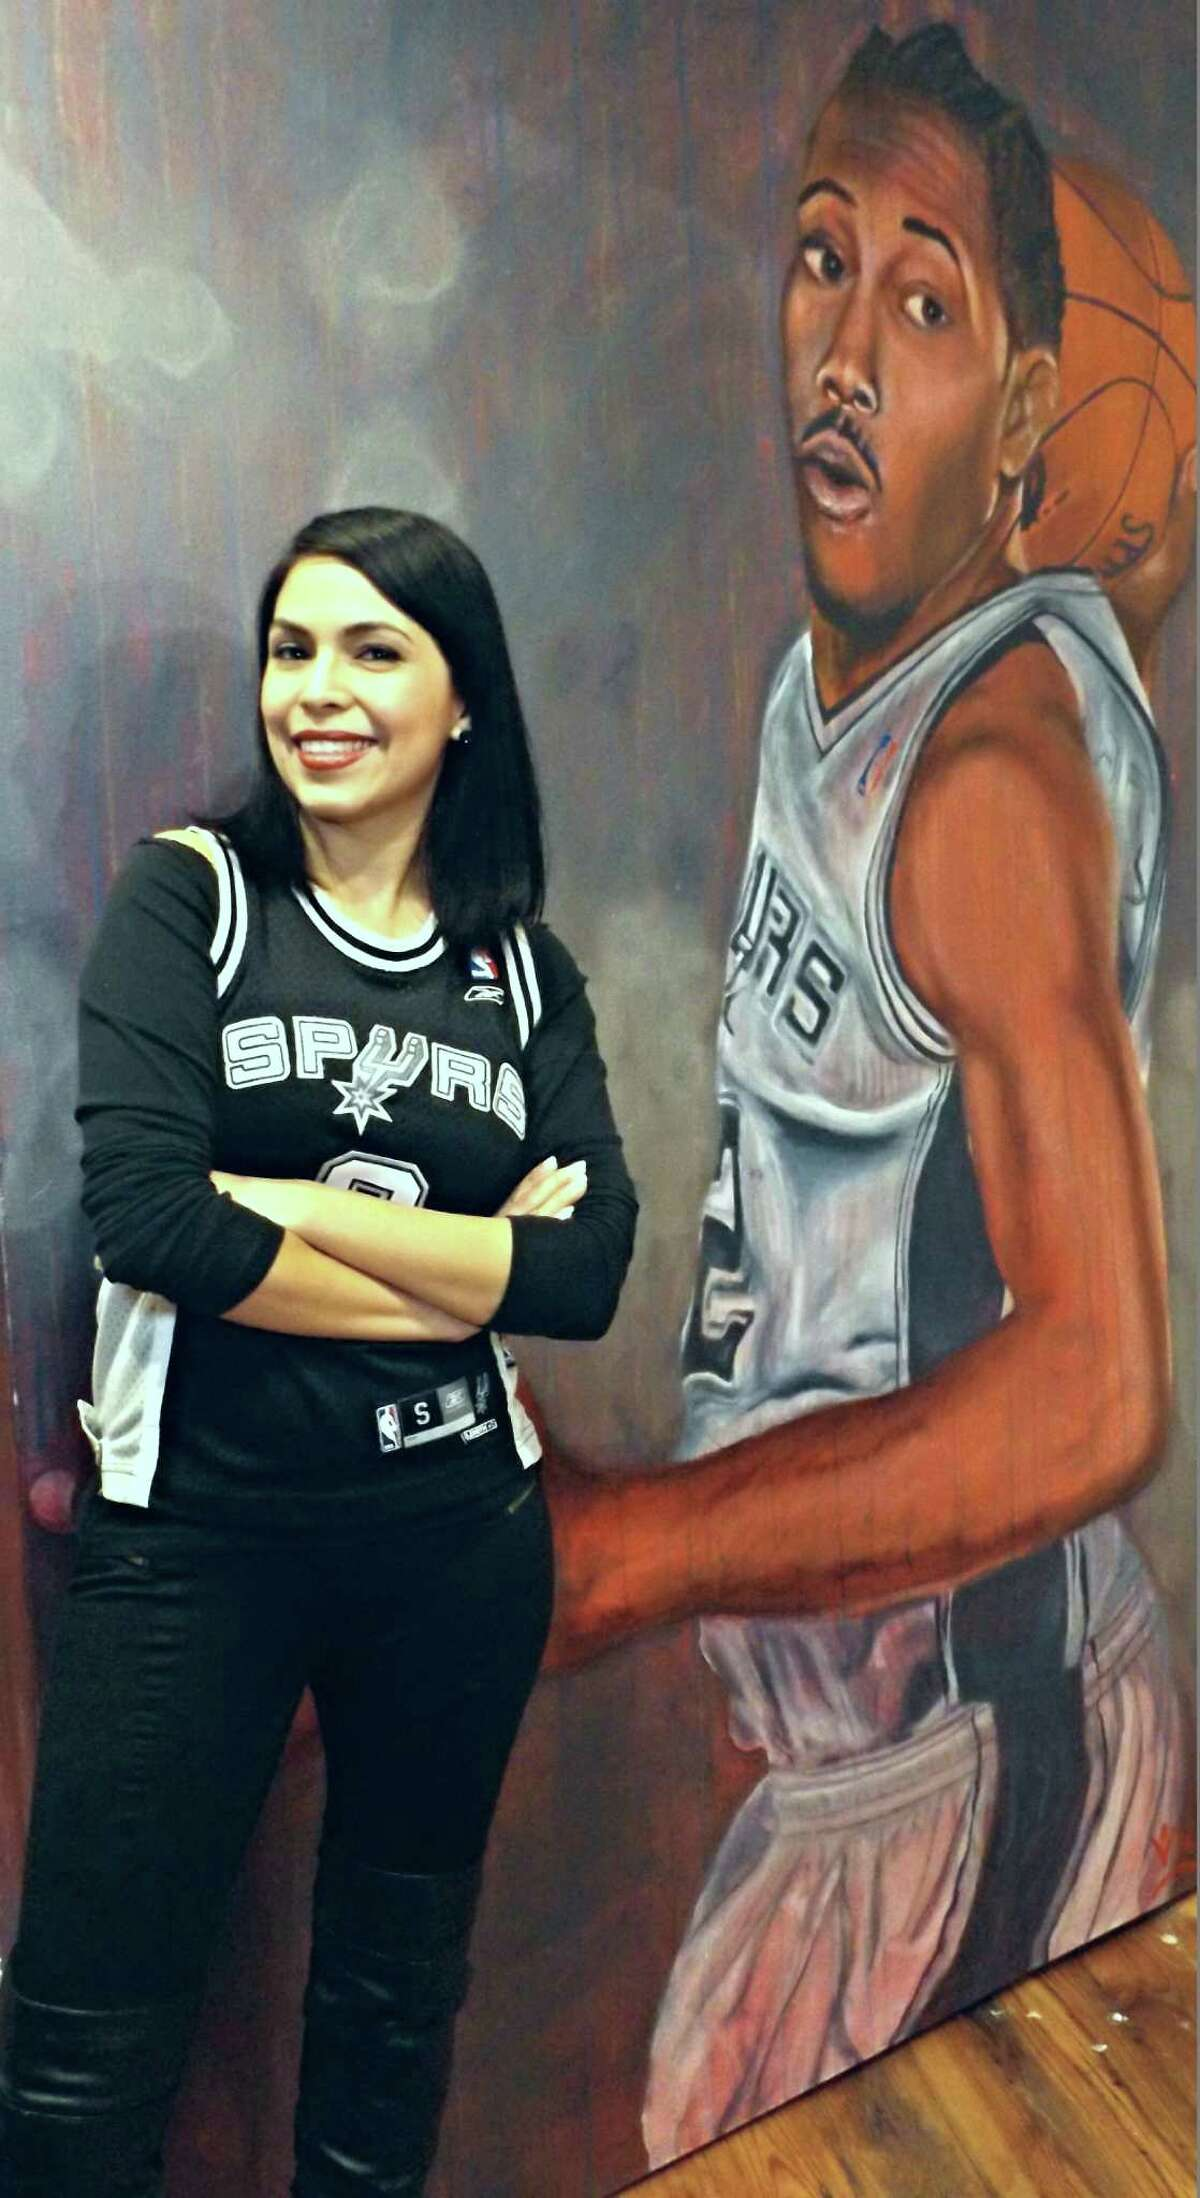 De La Fuente's inspiration for the paintings obviously grew from his longtime love for the team but he said Ginobili's victory face hits on a topic deeper than championship moments.